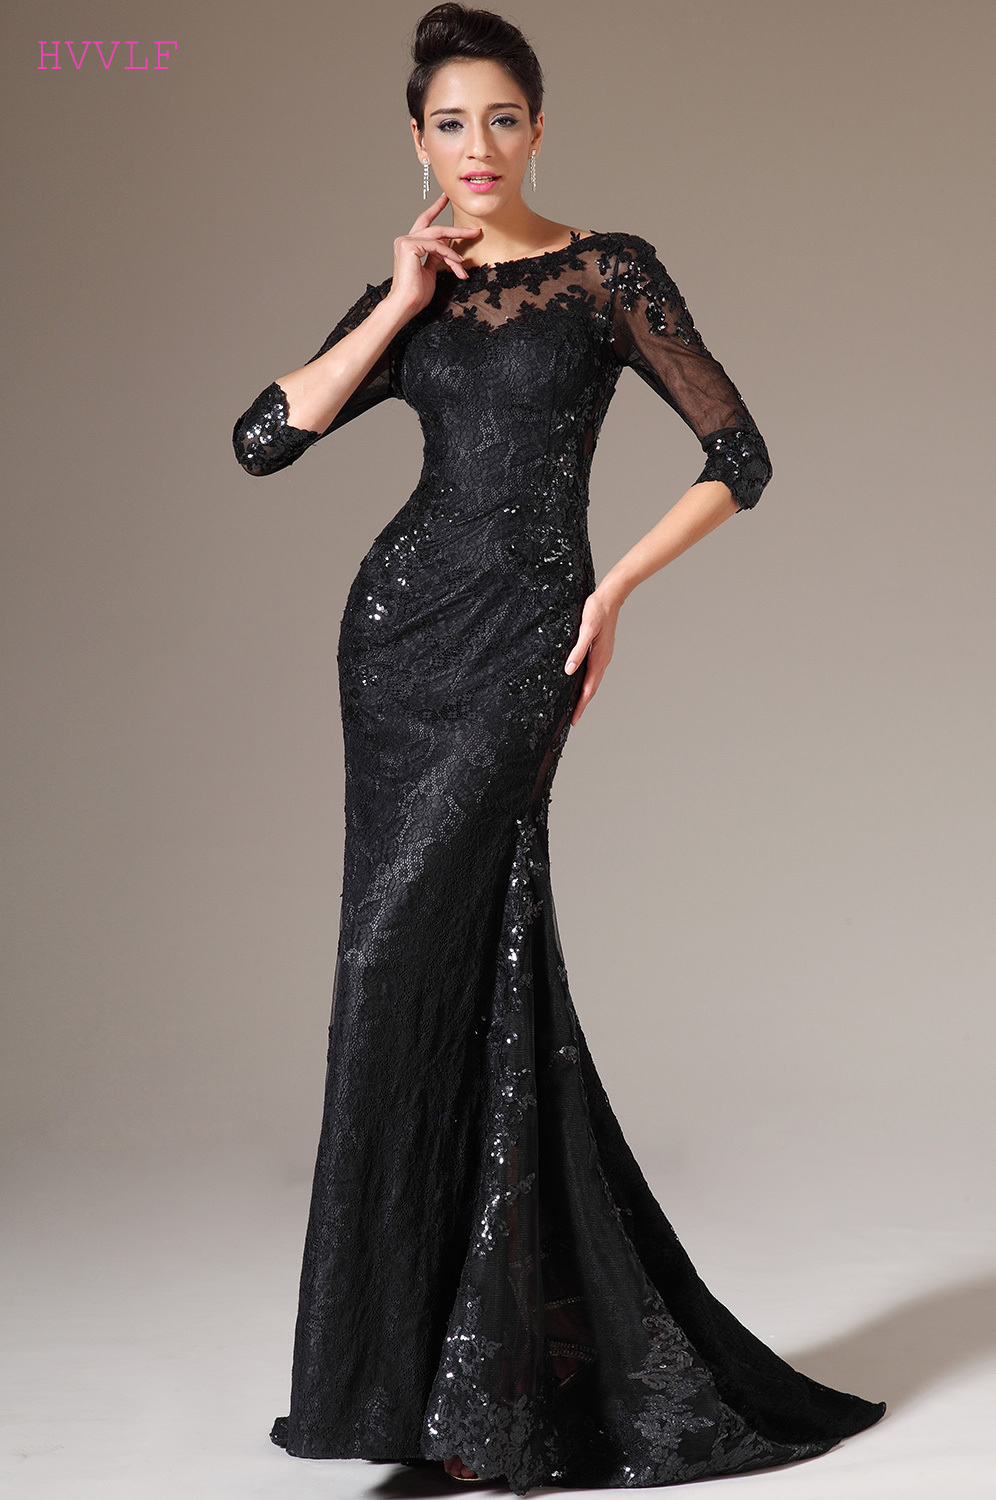 Black   Evening     Dresses   2019 Mermaid 3/4 Sleeves Sequins Lace See Through Women Long   Evening   Gown Prom   Dresses   Robe De Soiree